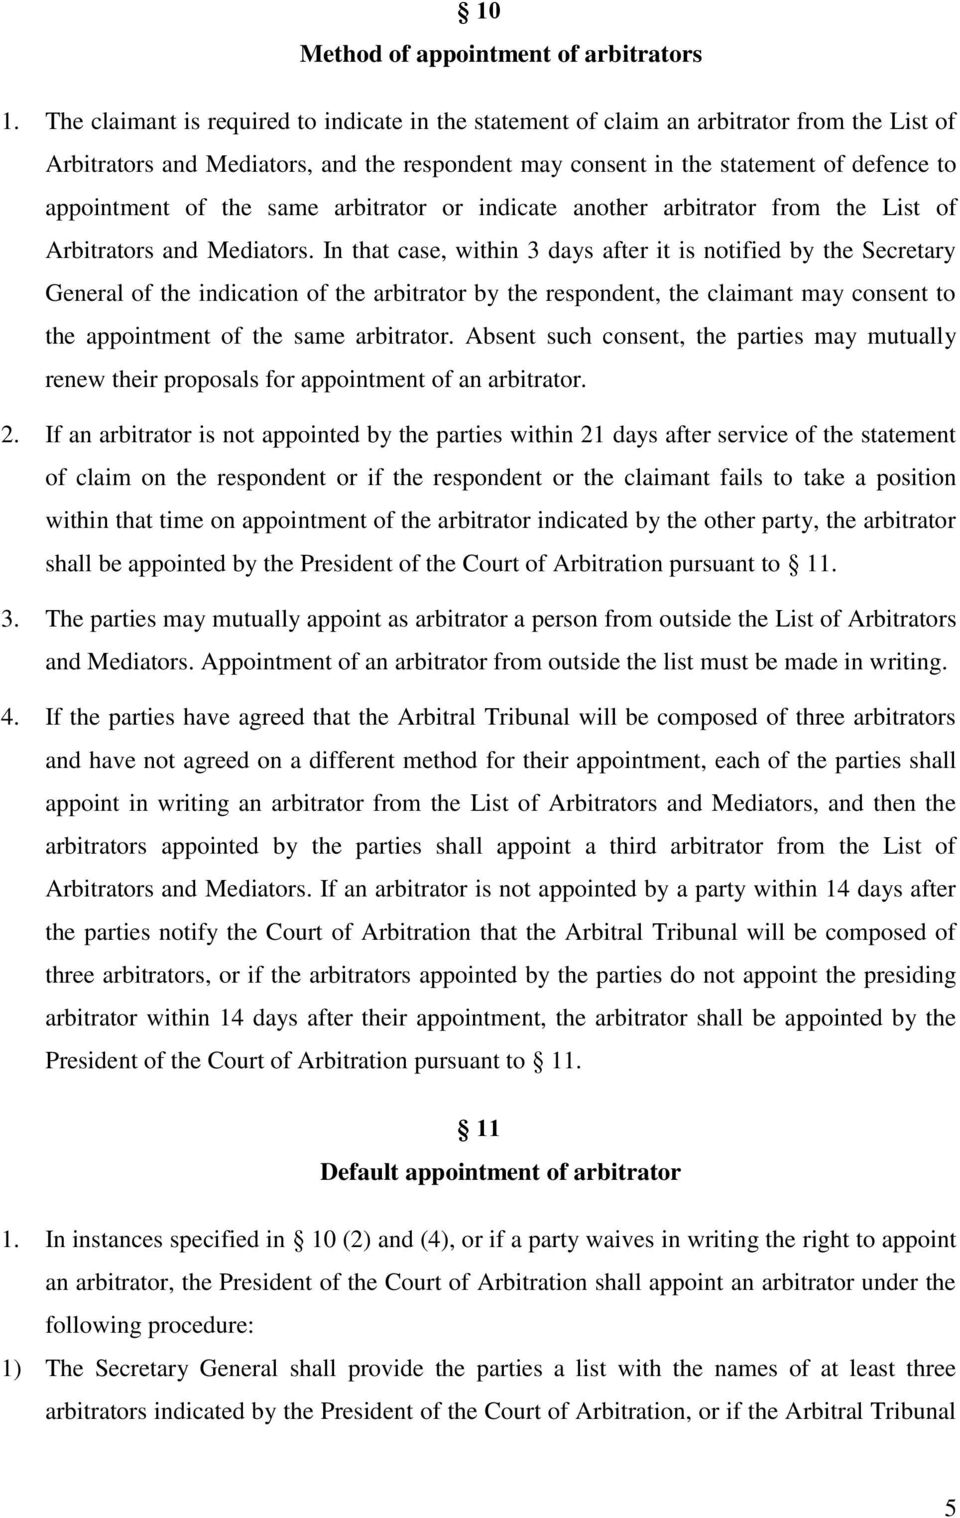 the same arbitrator or indicate another arbitrator from the List of Arbitrators and Mediators.